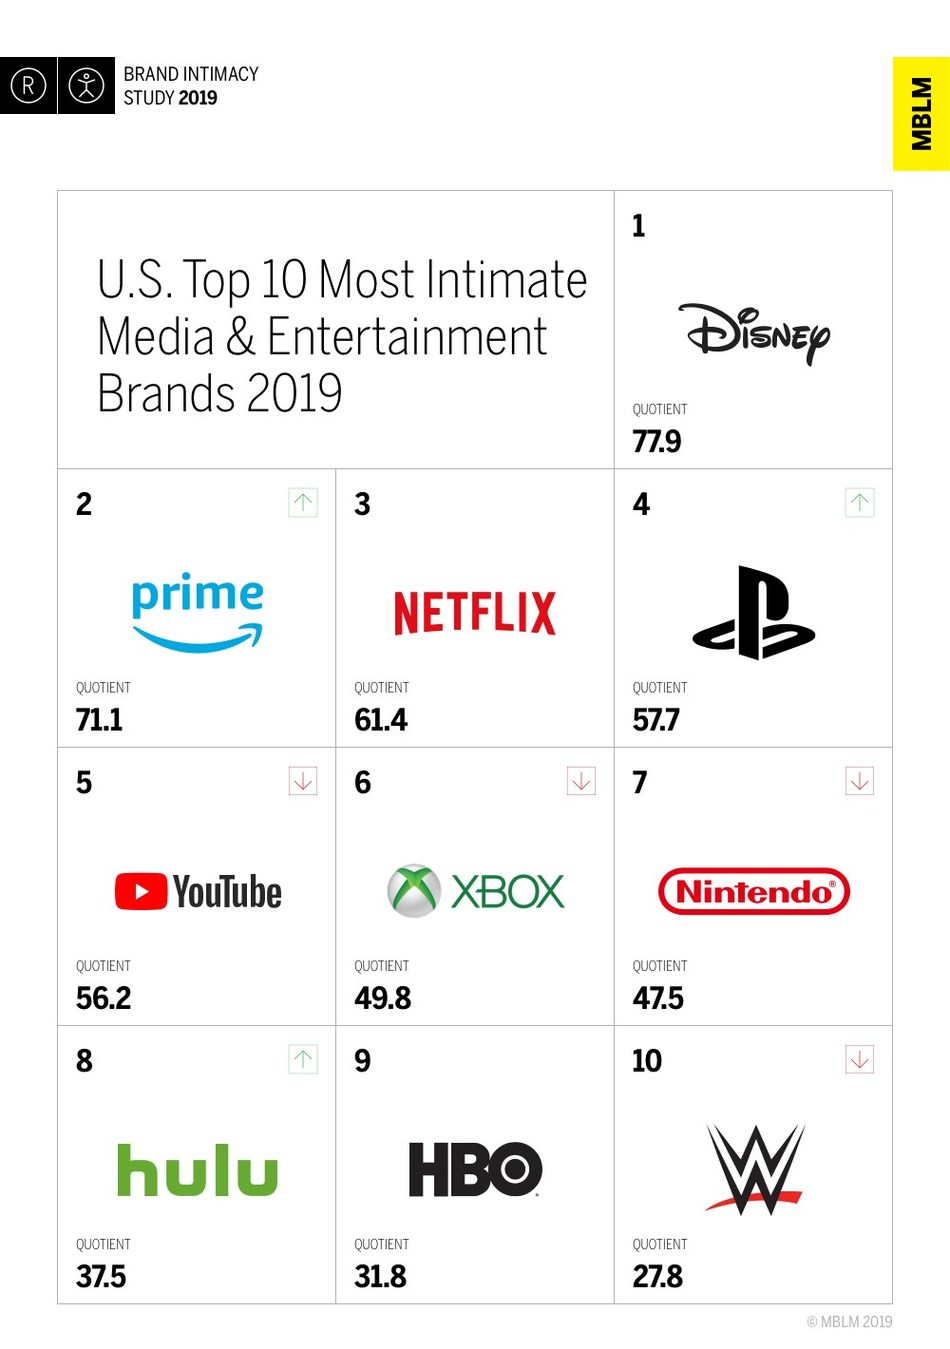 U.S. Top 10 Most Intimate Media & Entertainment Brands 2019